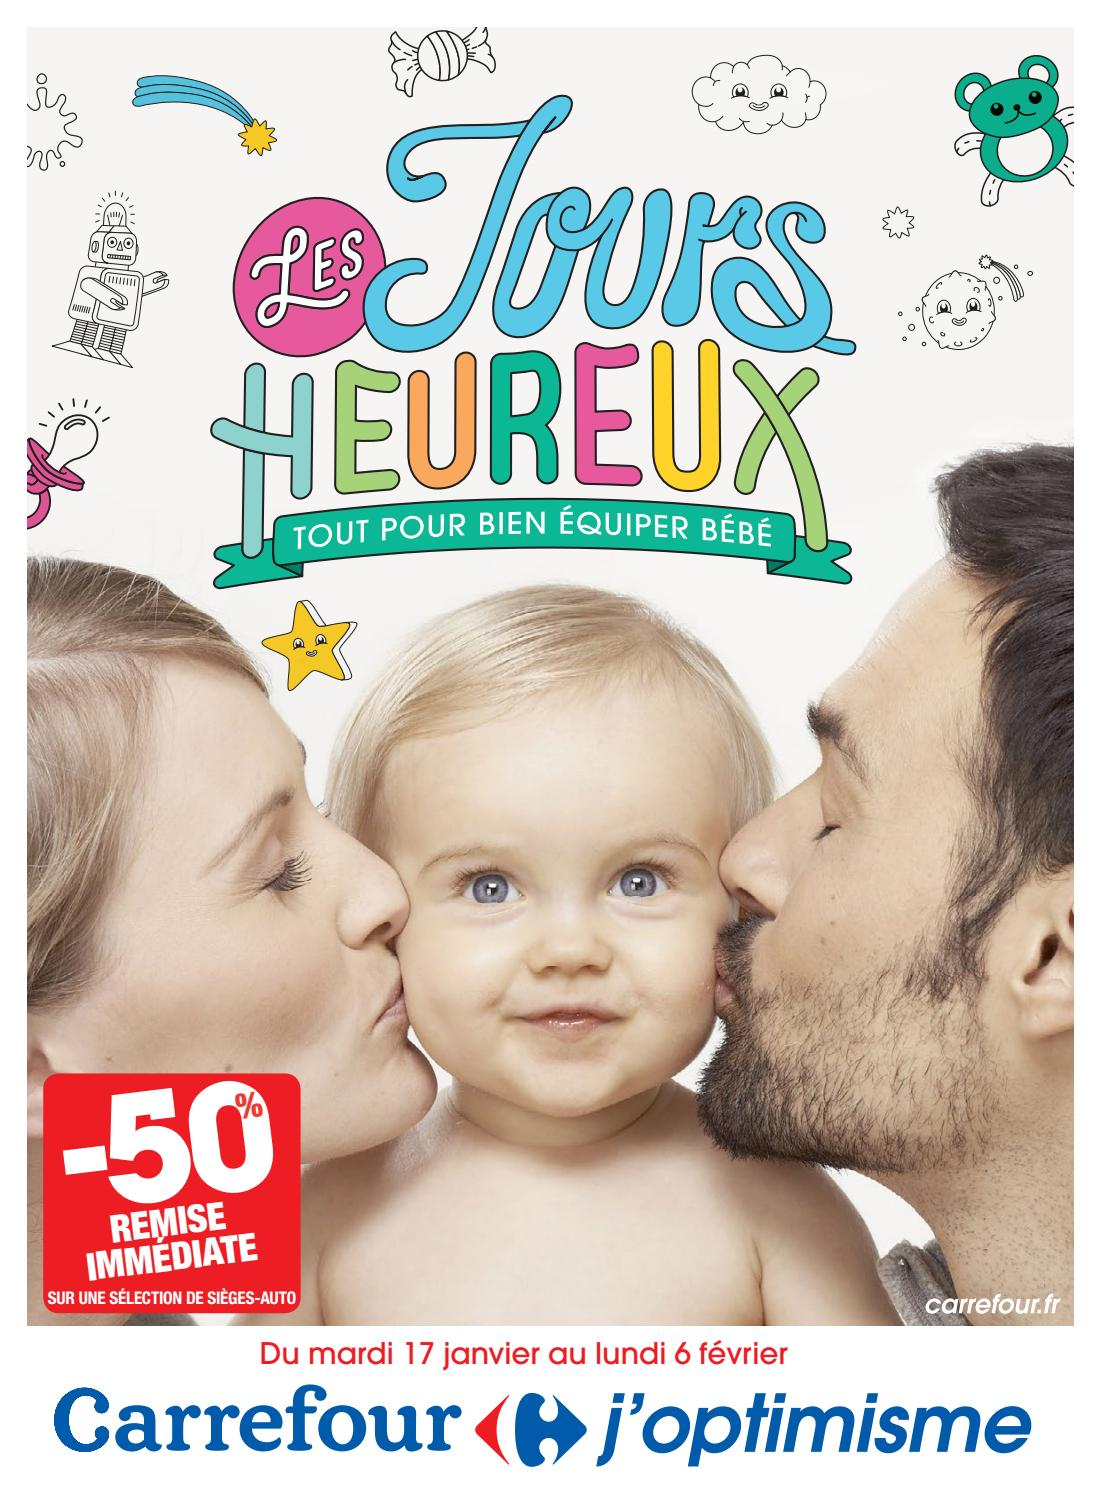 bb93cd6fecd75 Catalogue spécial bébé 2017 Carrefour by Yvernault - issuu